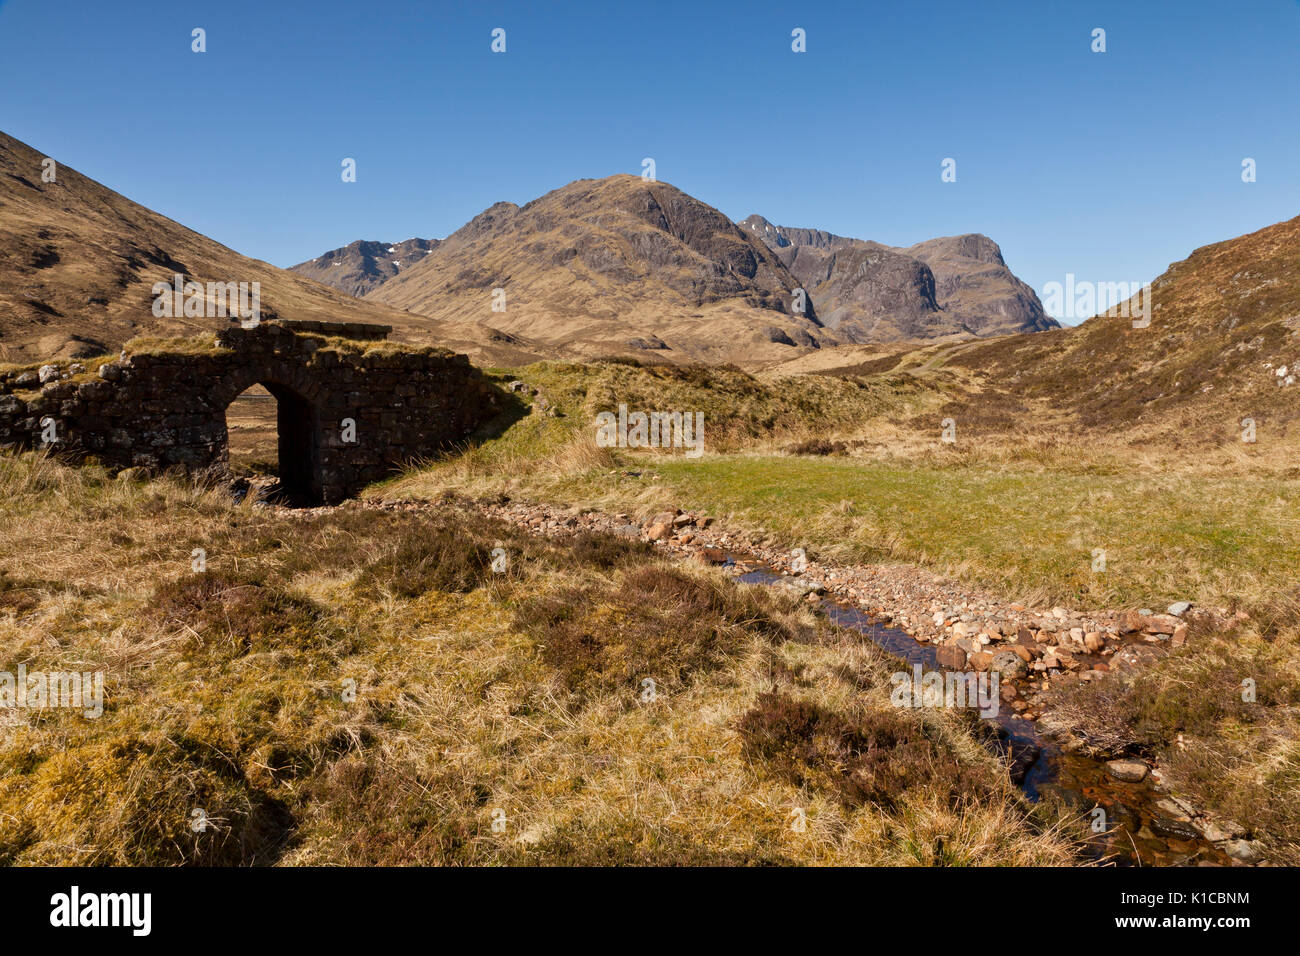 The Three sisters of Glencoe, Scotland, UK - Stock Image